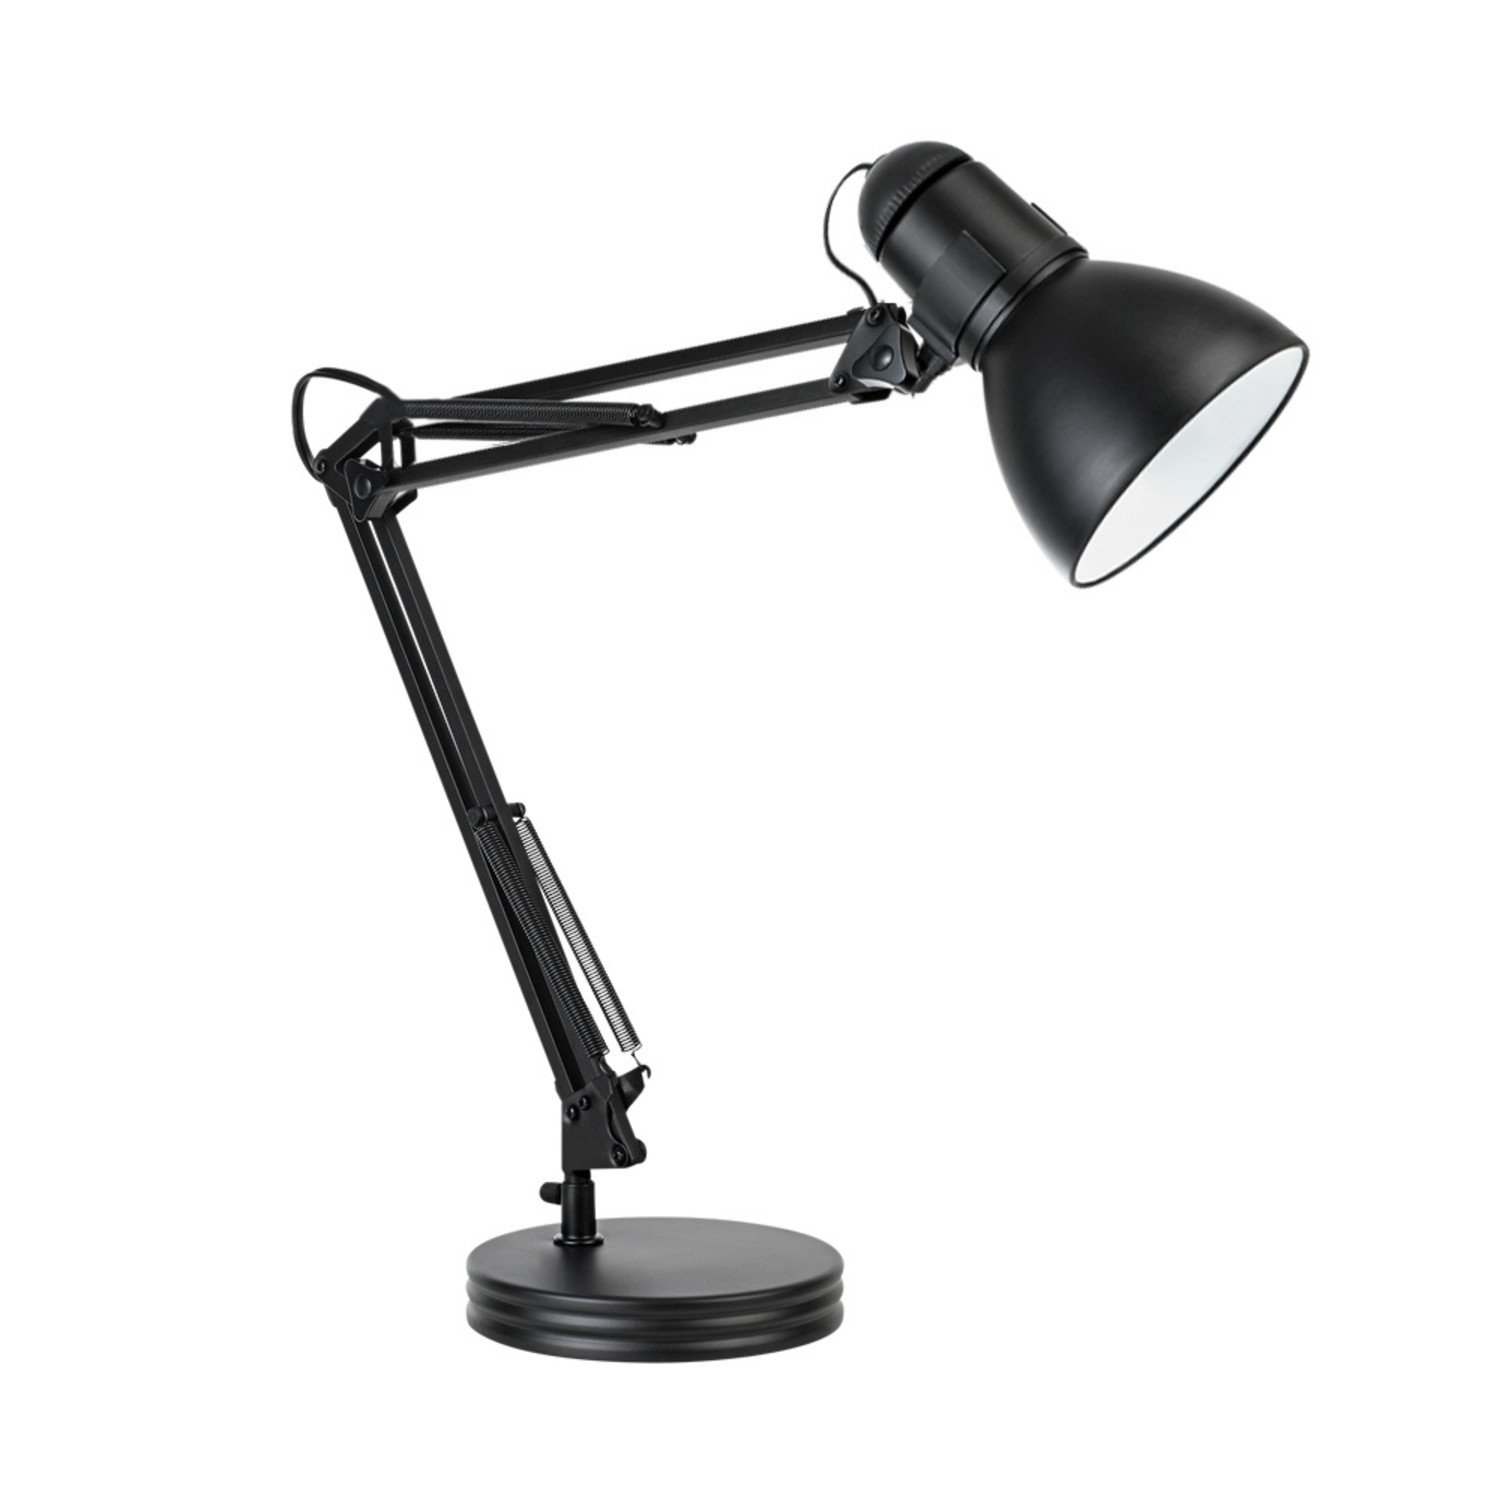 Desk Lamps Lighting Ceiling Fans Shades Torch Tshirt Women Tosca Hijau Xl Globe Electric 33 Heavy Base Architect Spring Balanced Swing Arm Lamp Black Finish